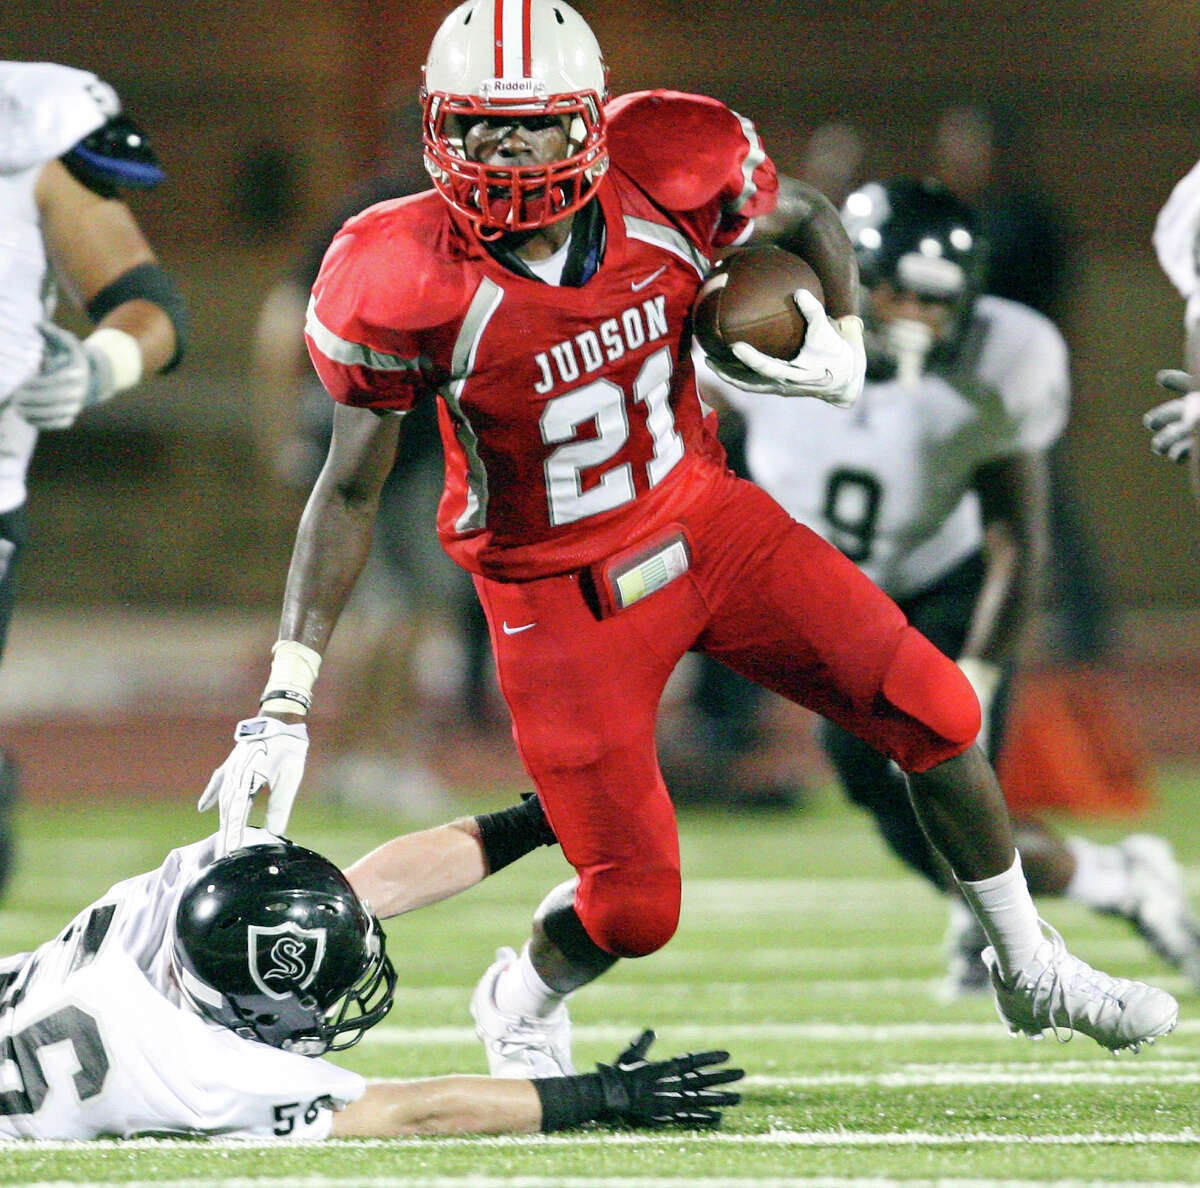 Judson's Cedric Williams looks for room around Steele's Chris Boring during second half action Friday Sept. 6, 2013 at D.W. Rutledge Stadium. Steele won 51-34.